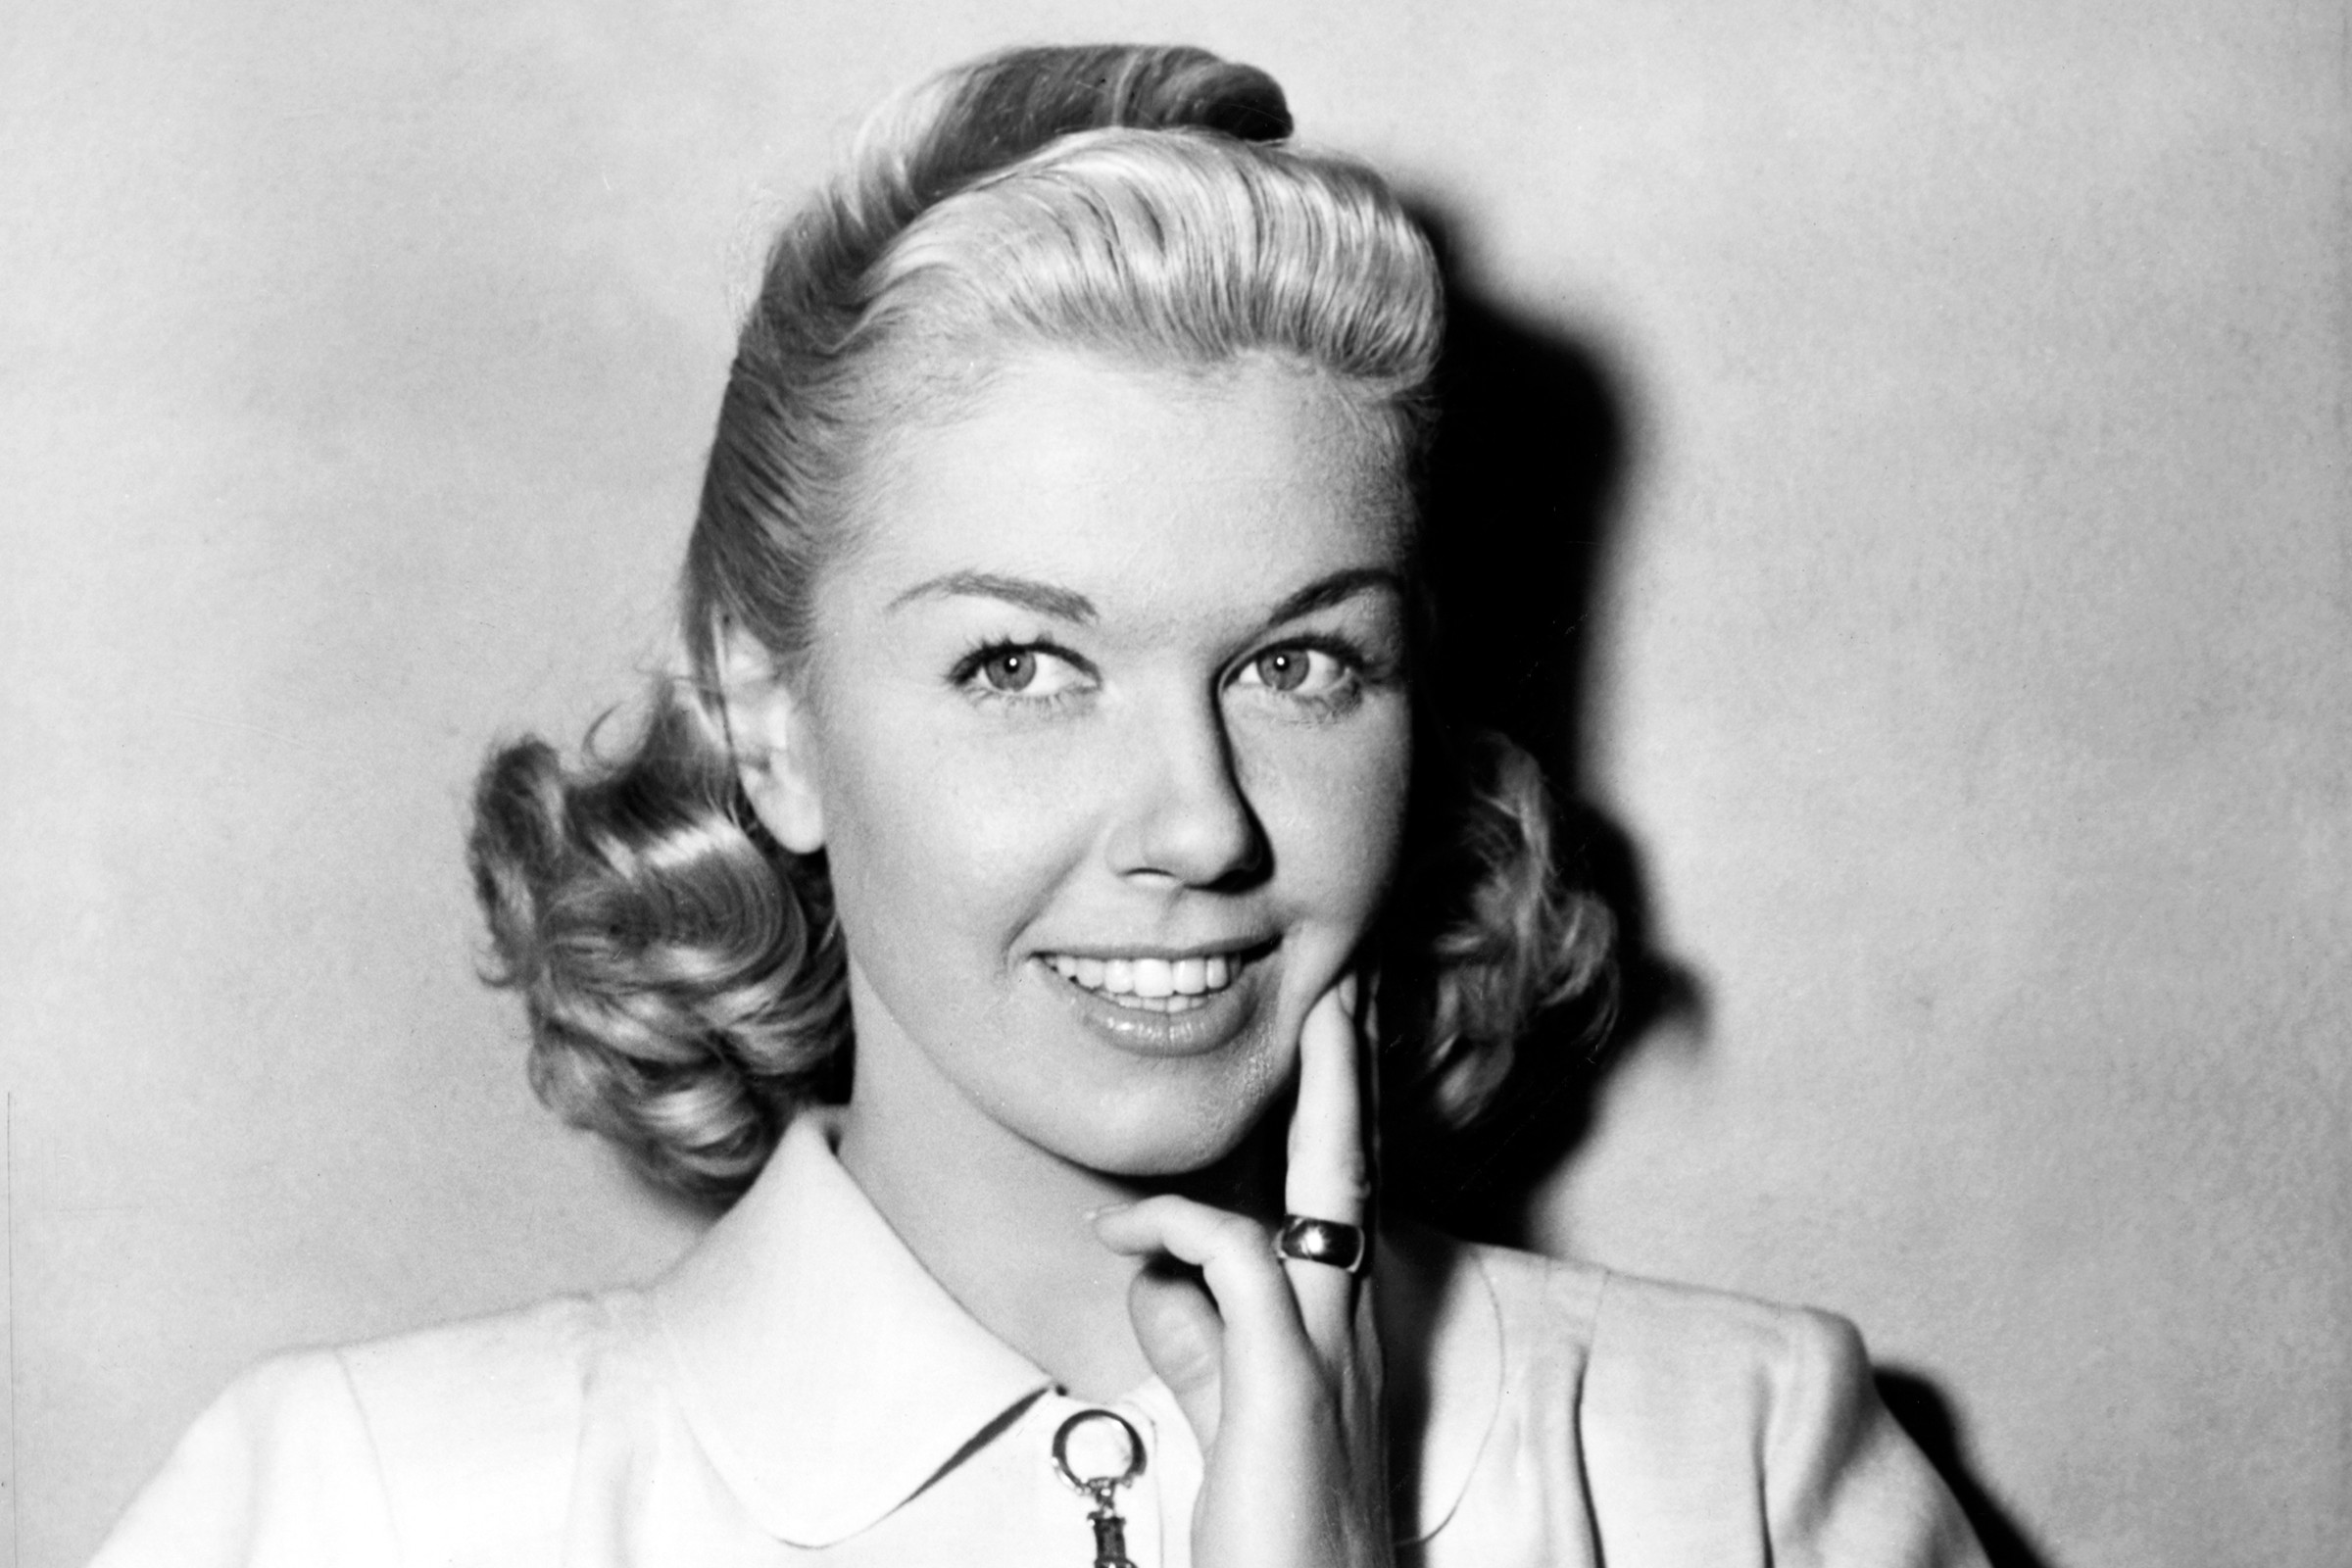 Doris Day Posing with Hand on Chin